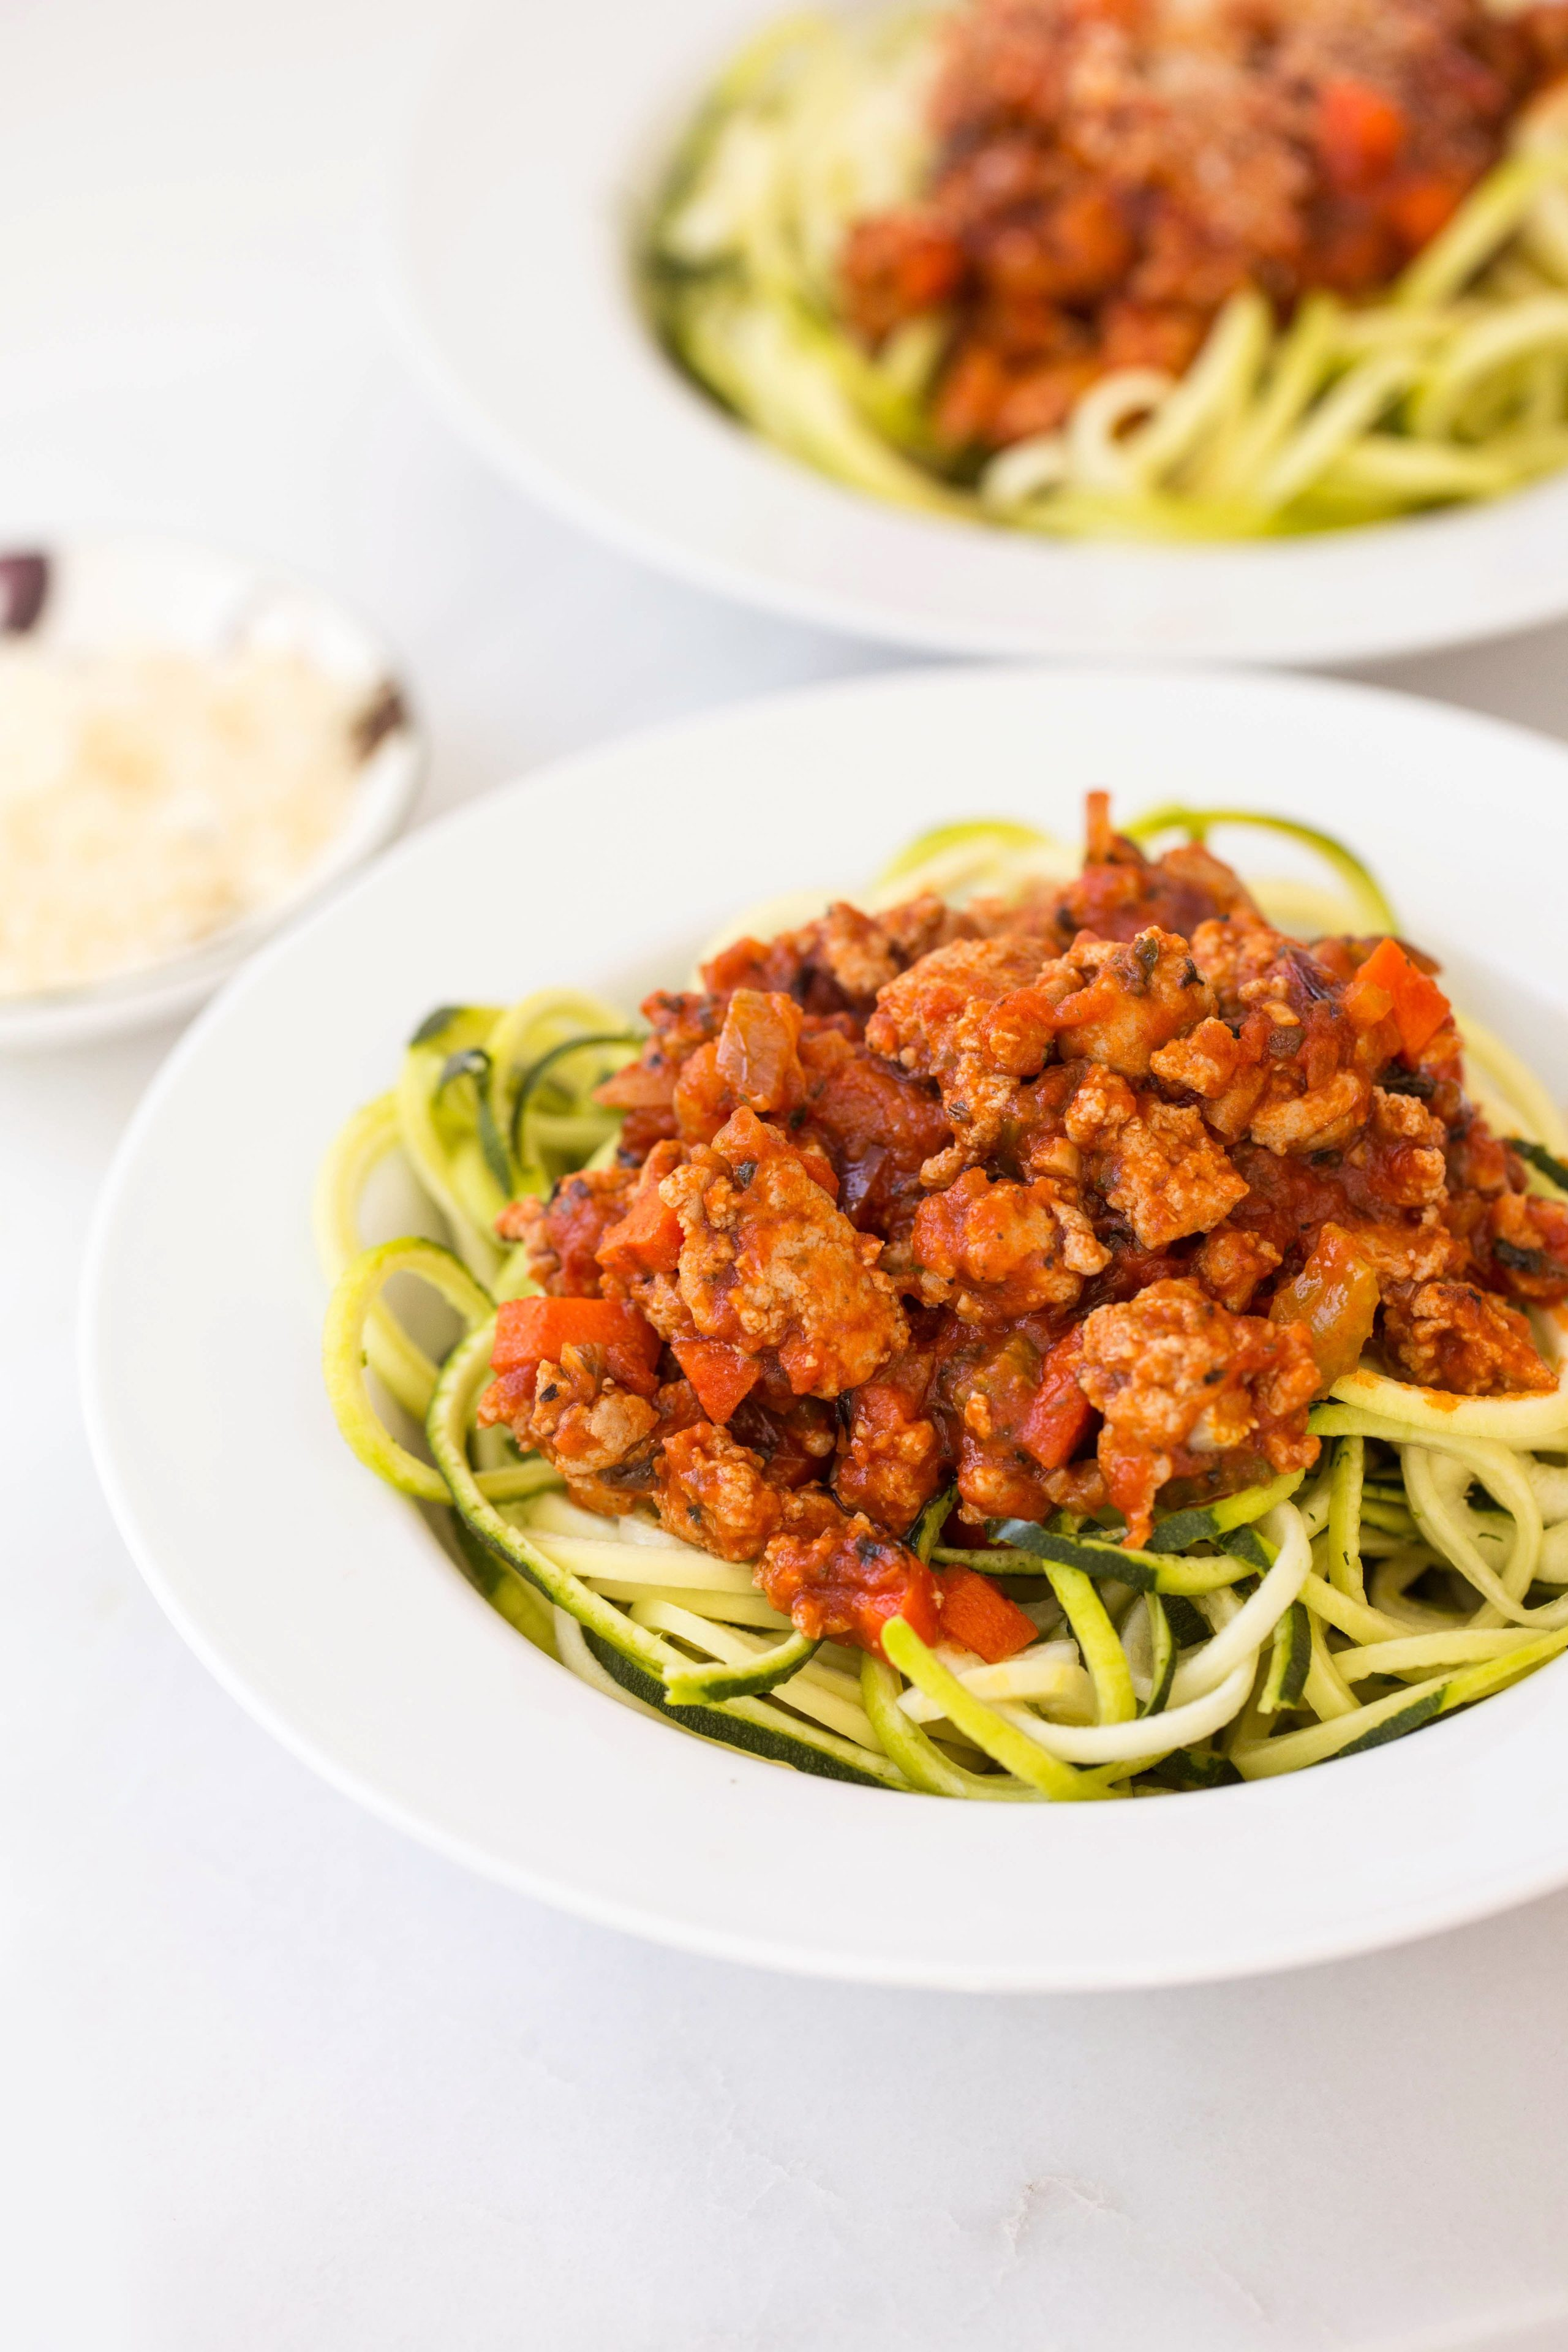 Turkey Bolognese with Zucchini Noodles from inspiralized.com on foodiecrush.com